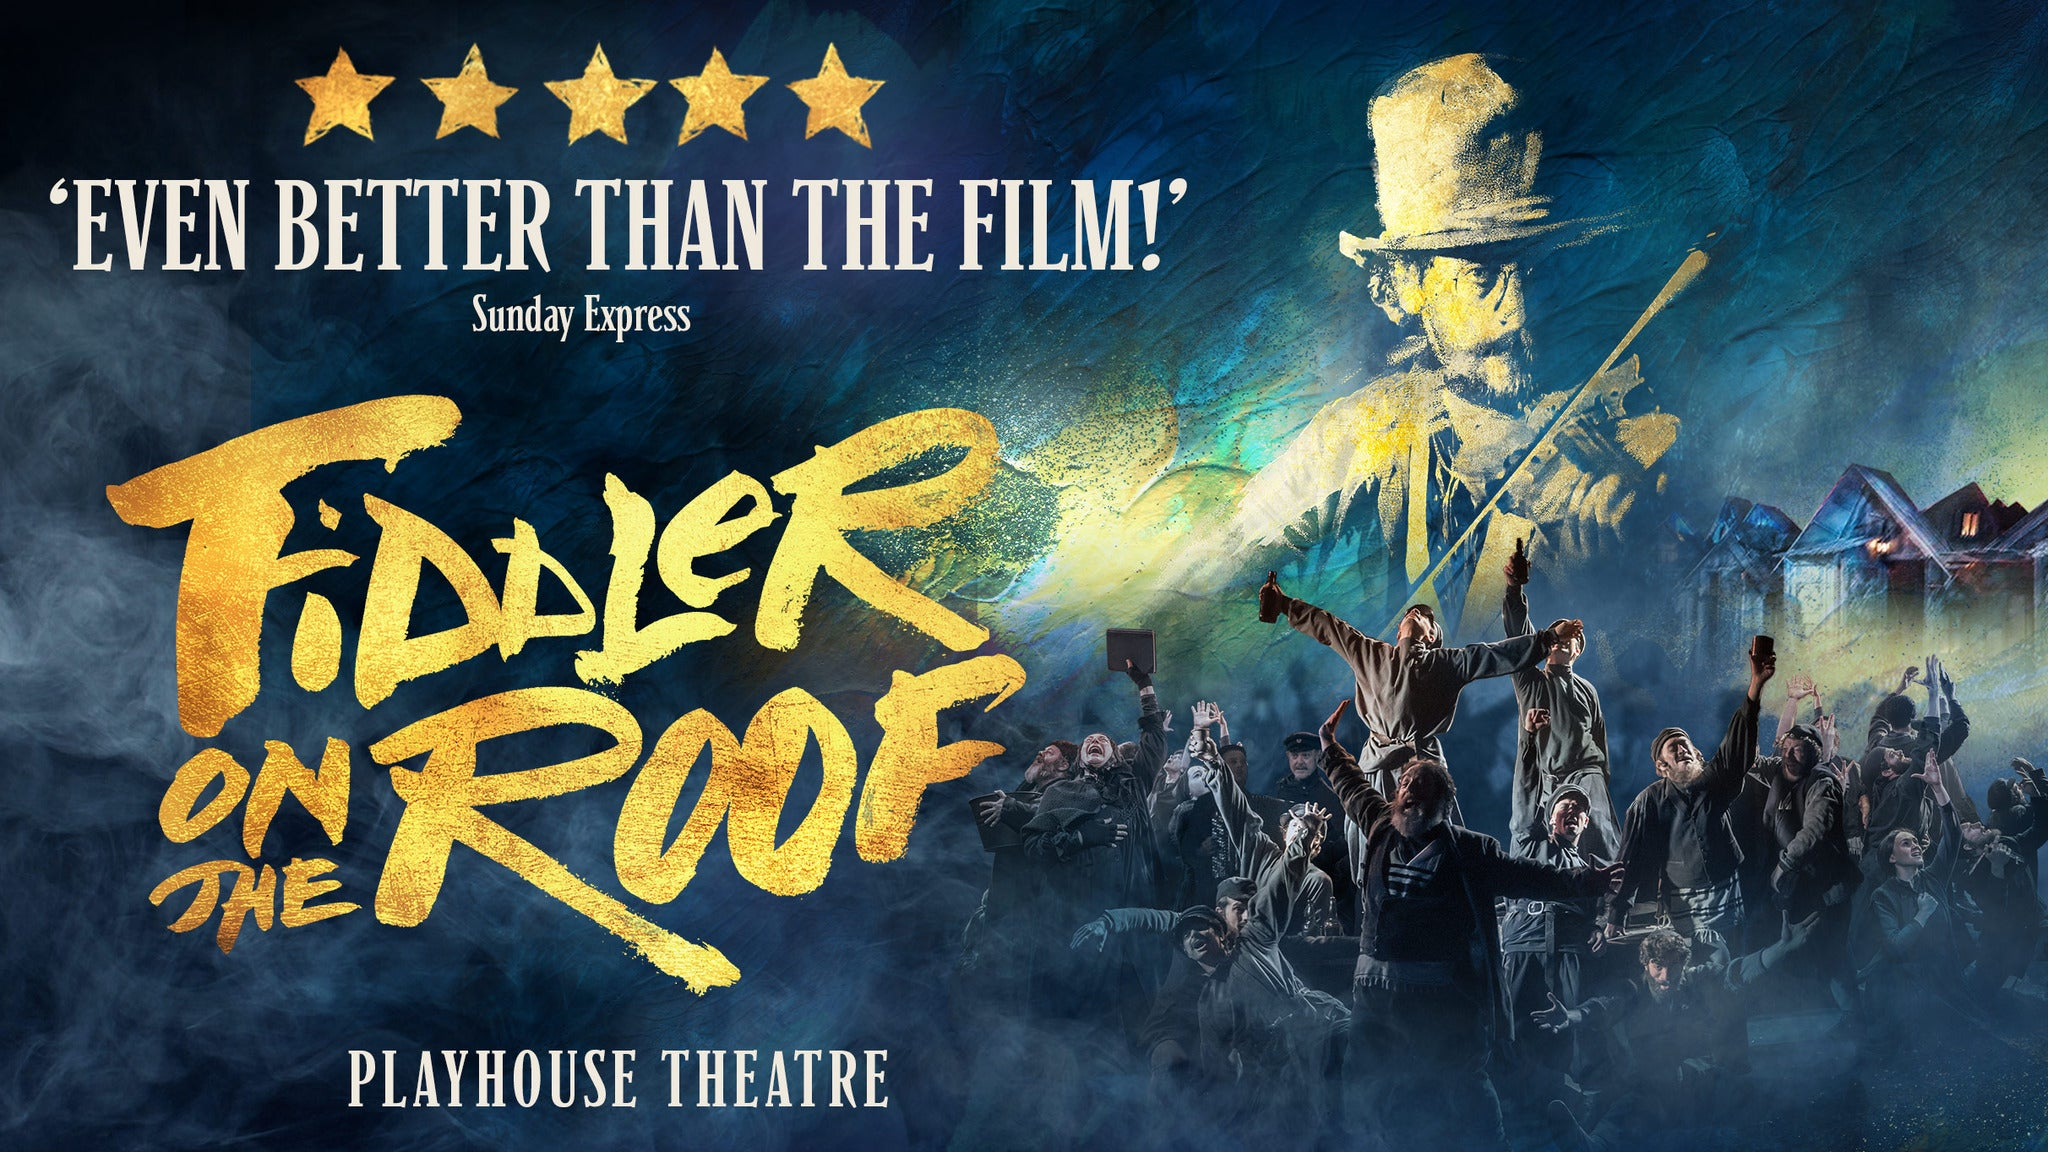 Fiddler On The Roof at National Theatre-DC - Washington, DC 20004